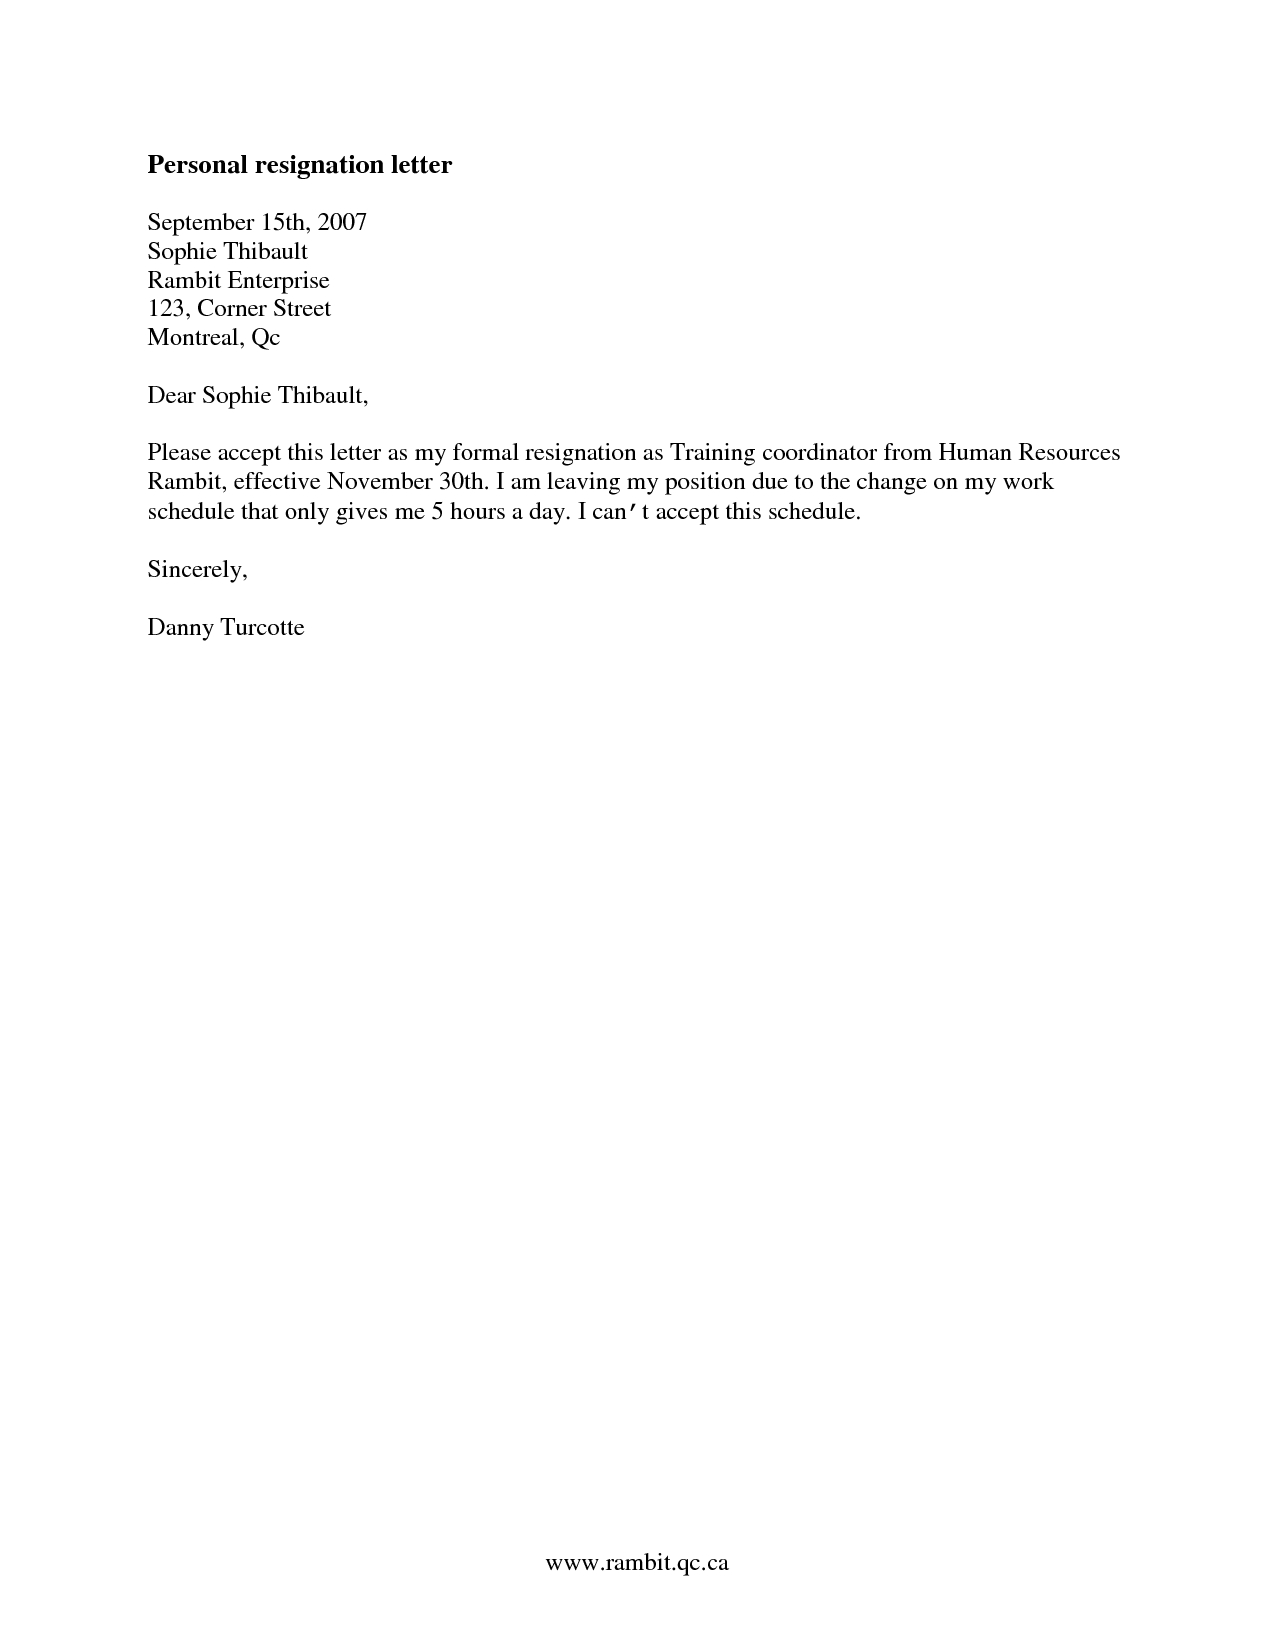 Immediate resignation letter template samples letter templates immediate resignation letter template immediate resignation letter template example immediate resignation letter health reasons spiritdancerdesigns Images